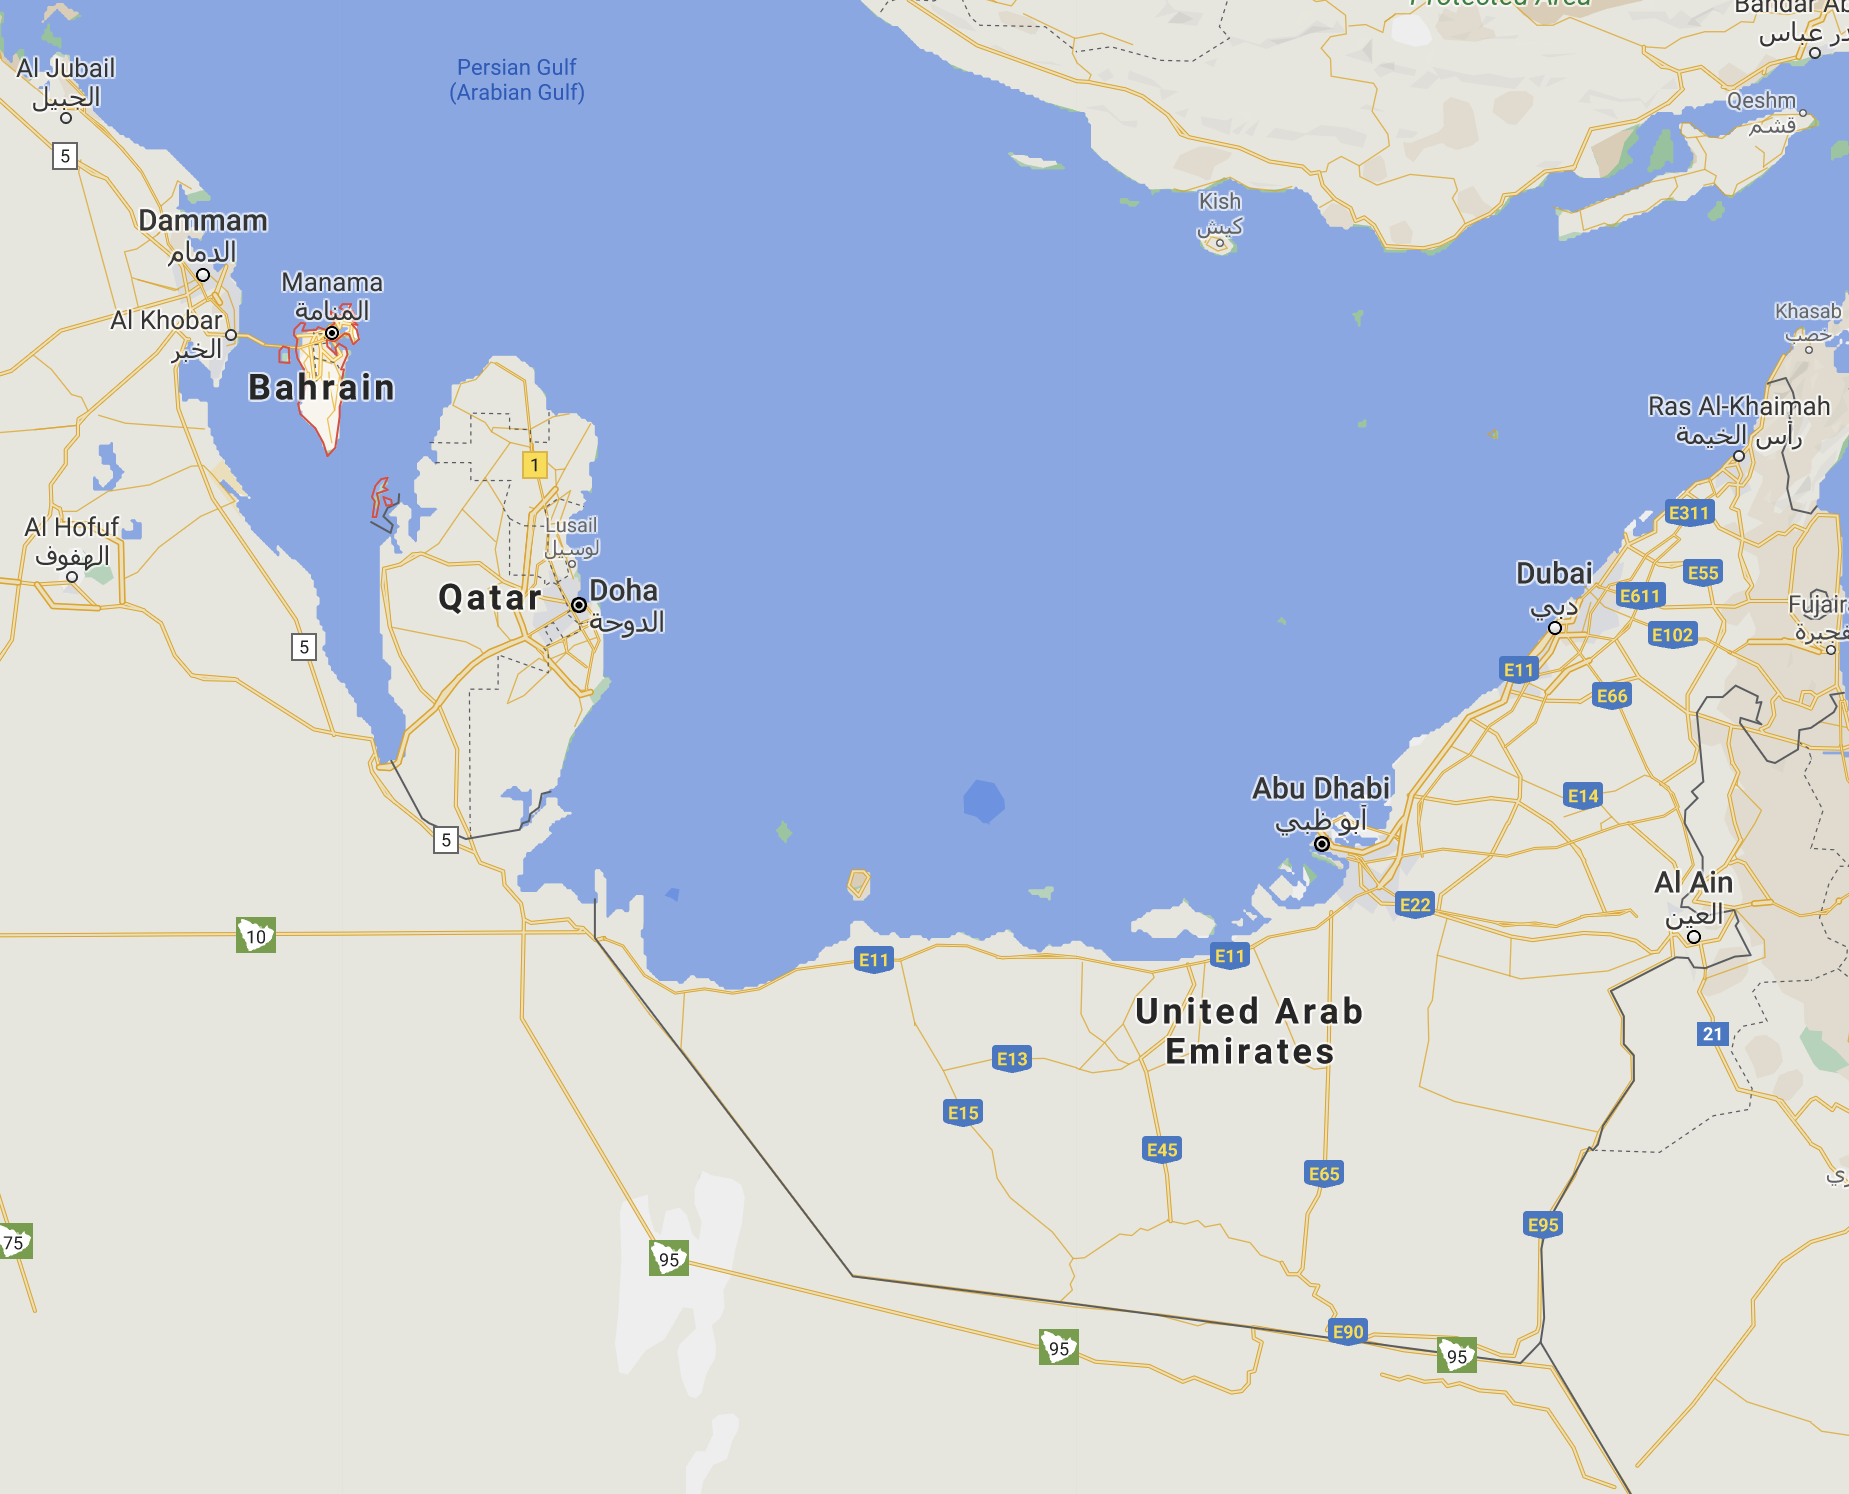 bahrain and the Emirates